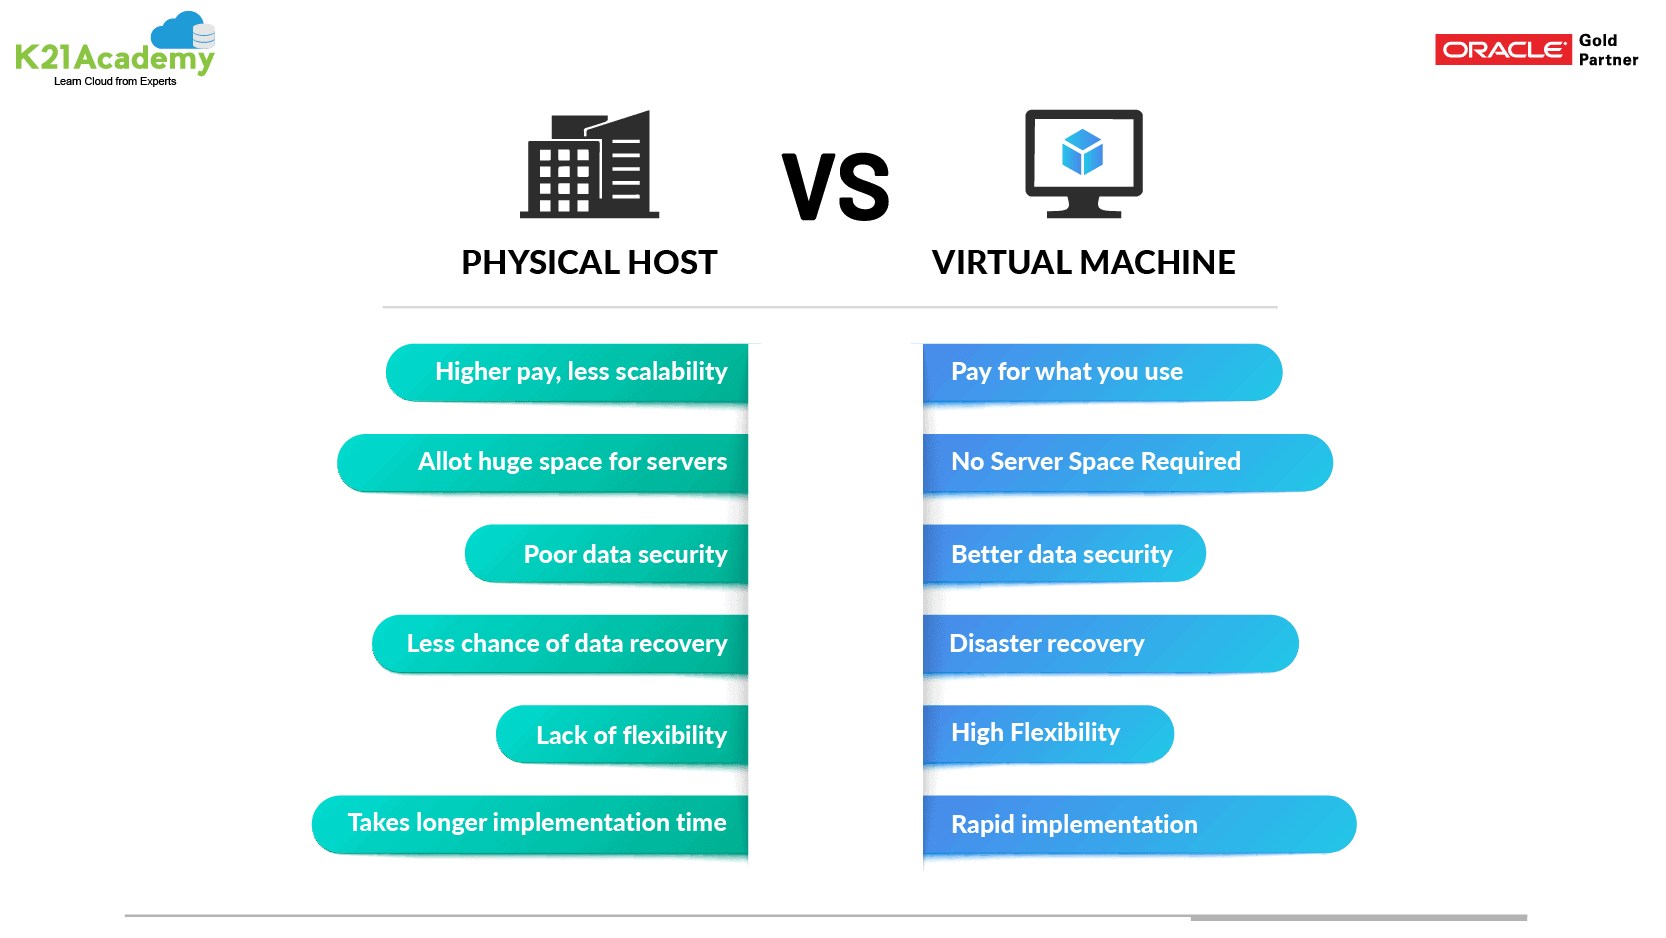 Difference Between Physical Host vs Virtual Machine